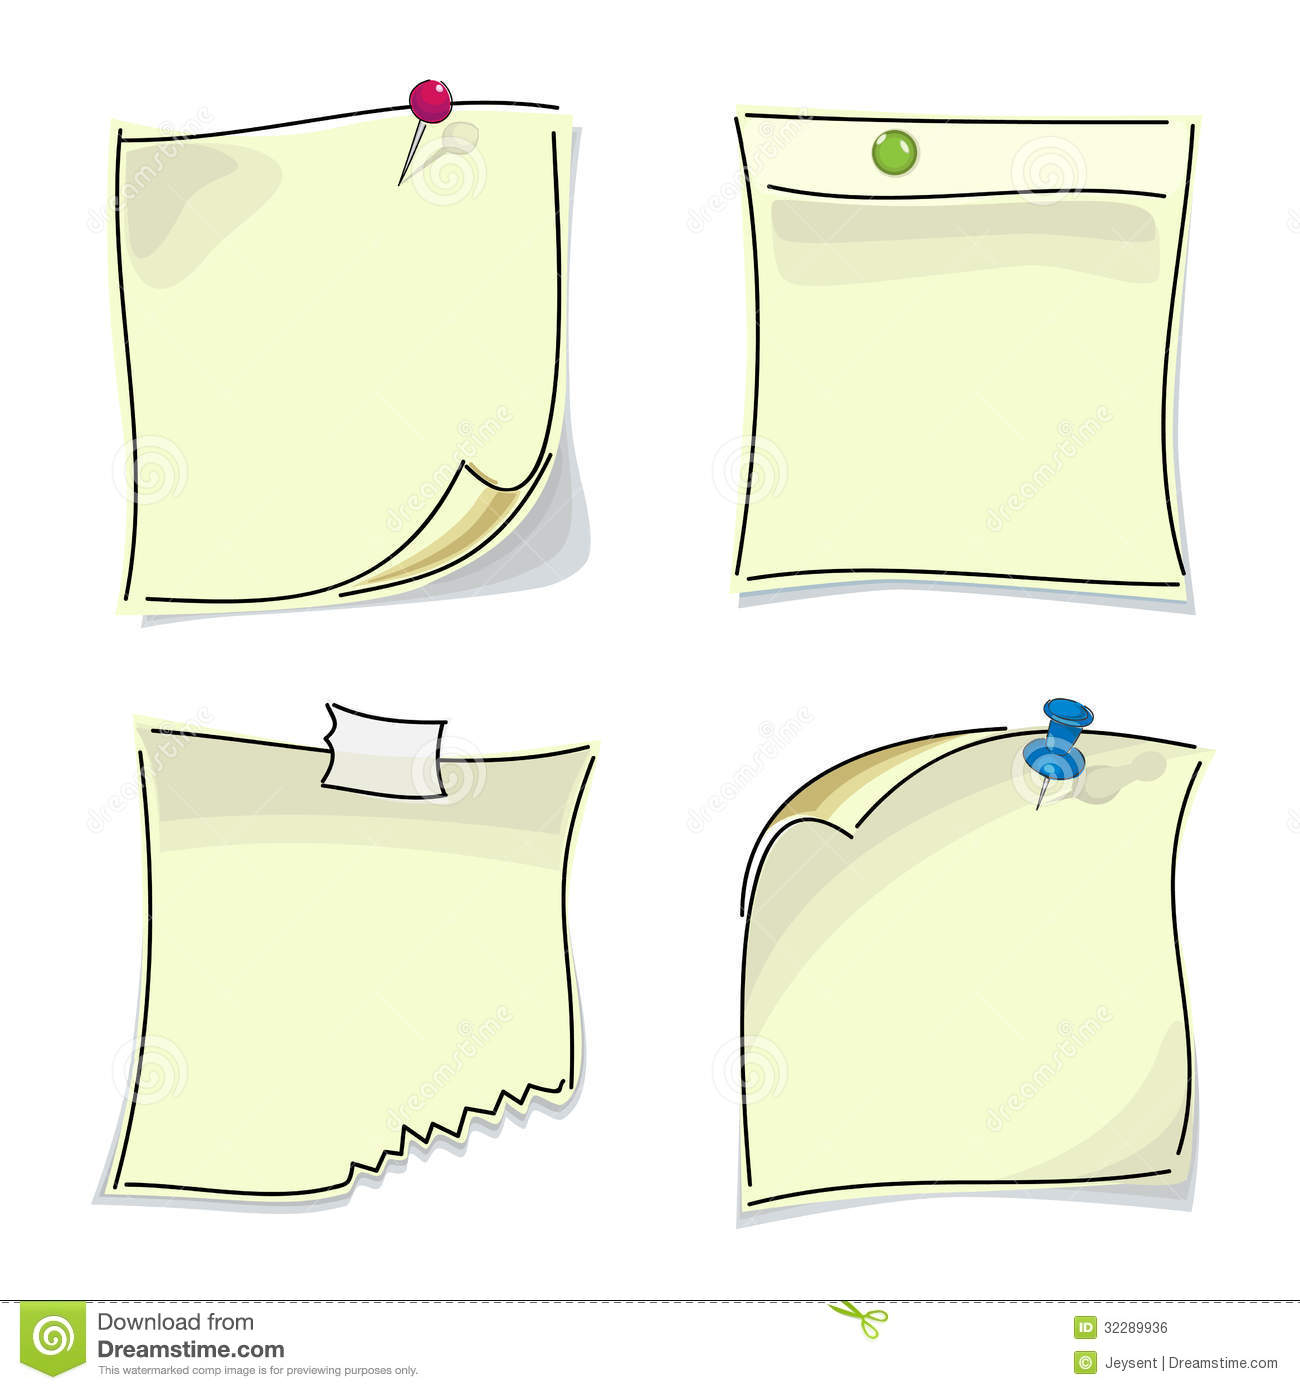 Royalty Free Stock Image Small Paper Sticky Notes Pinned Buttons Attached To Wall Multi Colored Image32289936 on Latest Letter Writing Paper